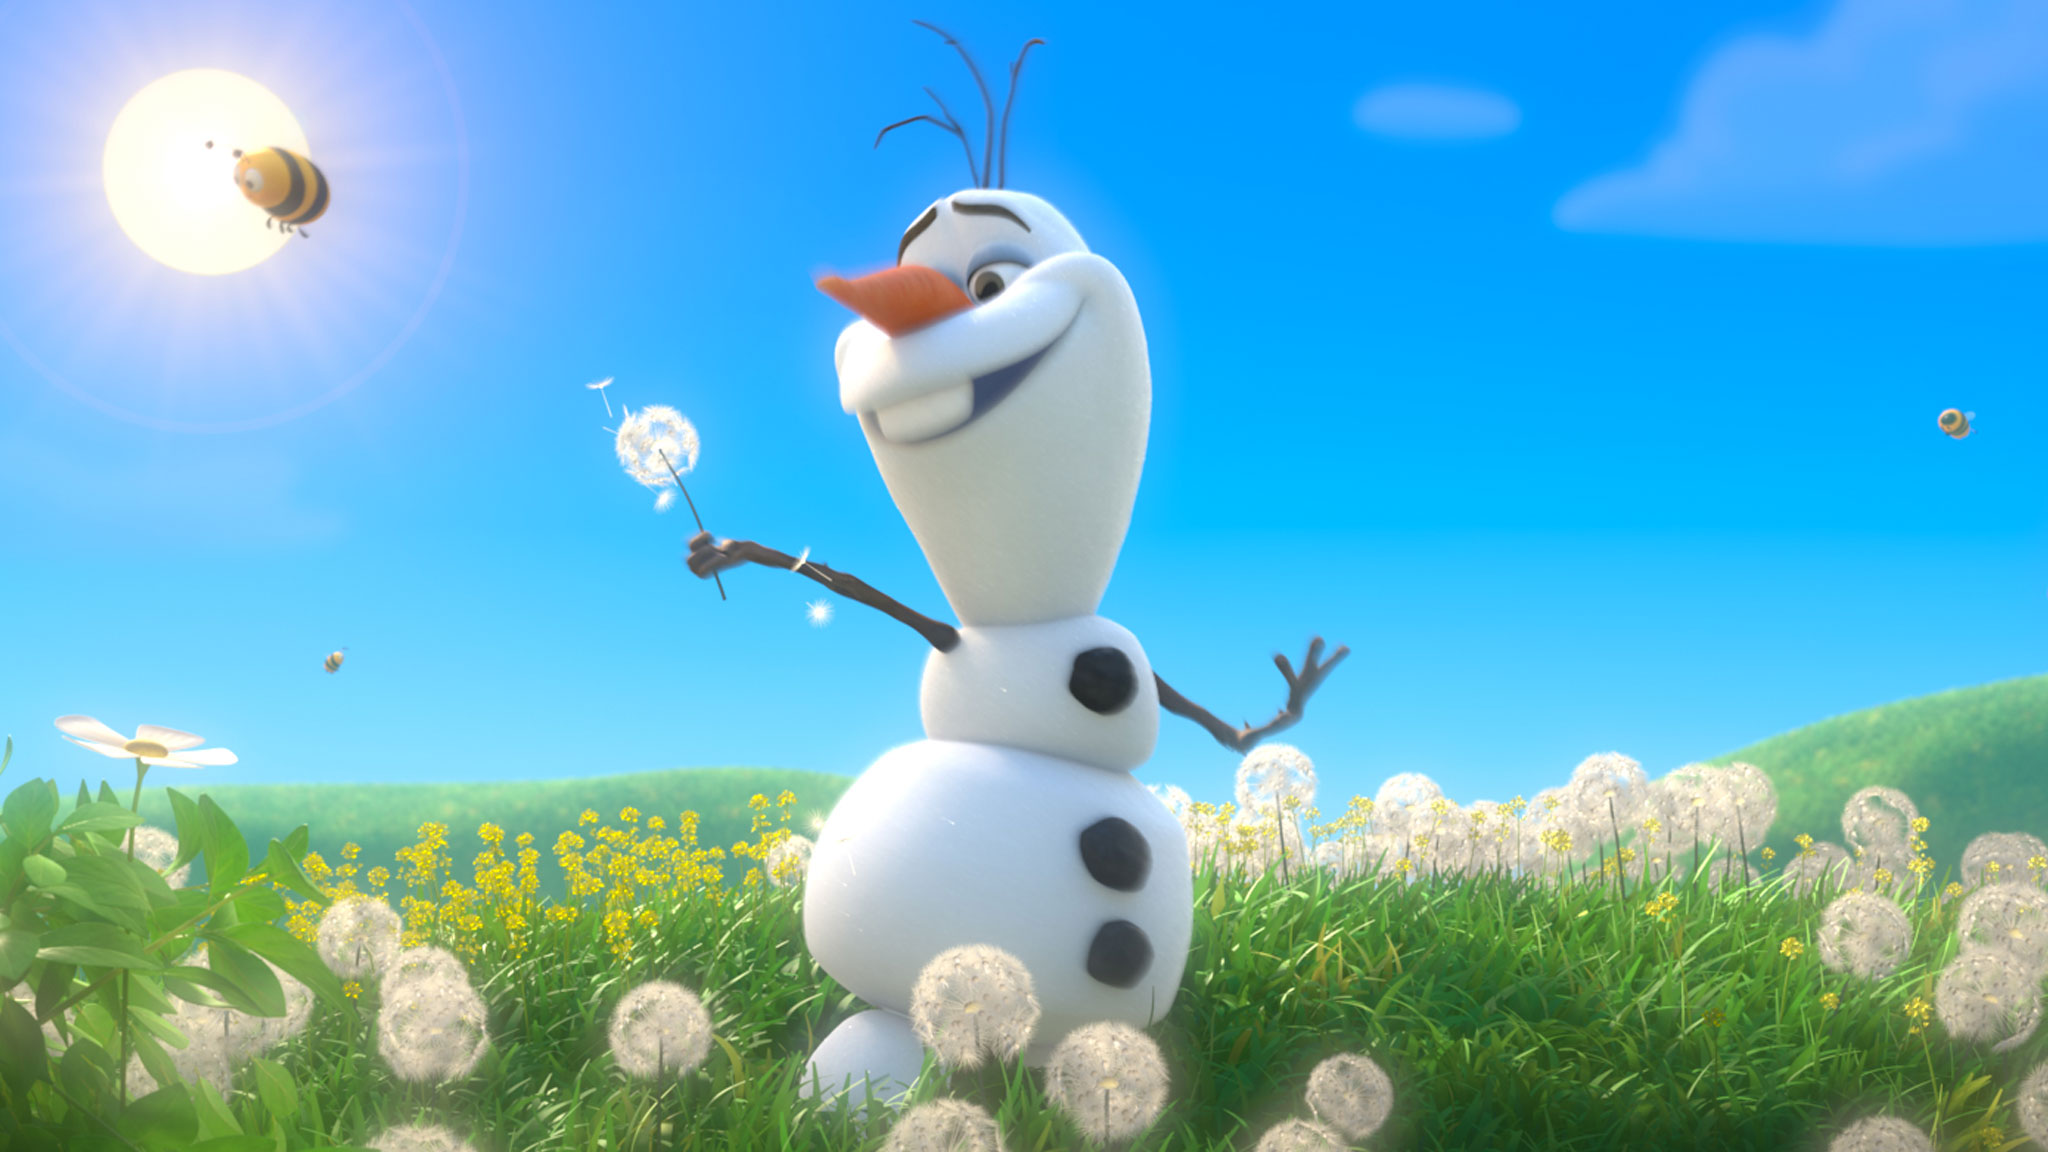 Olaf Happy Snowman Gif A happy snowman: in defense of